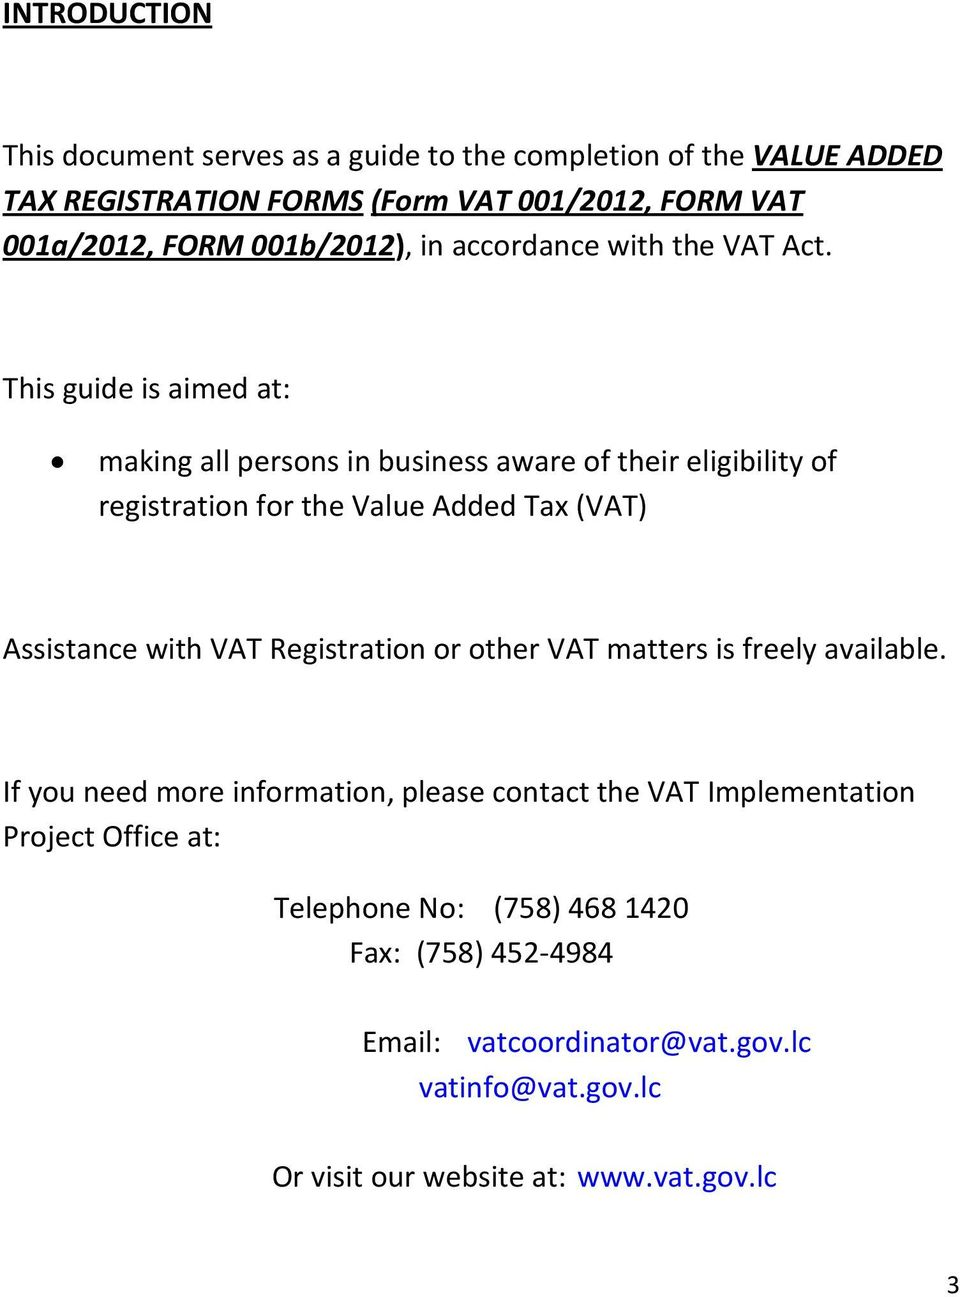 This guide is aimed at: making all persons in business aware of their eligibility of registration for the Value Added Tax (VAT) Assistance with VAT